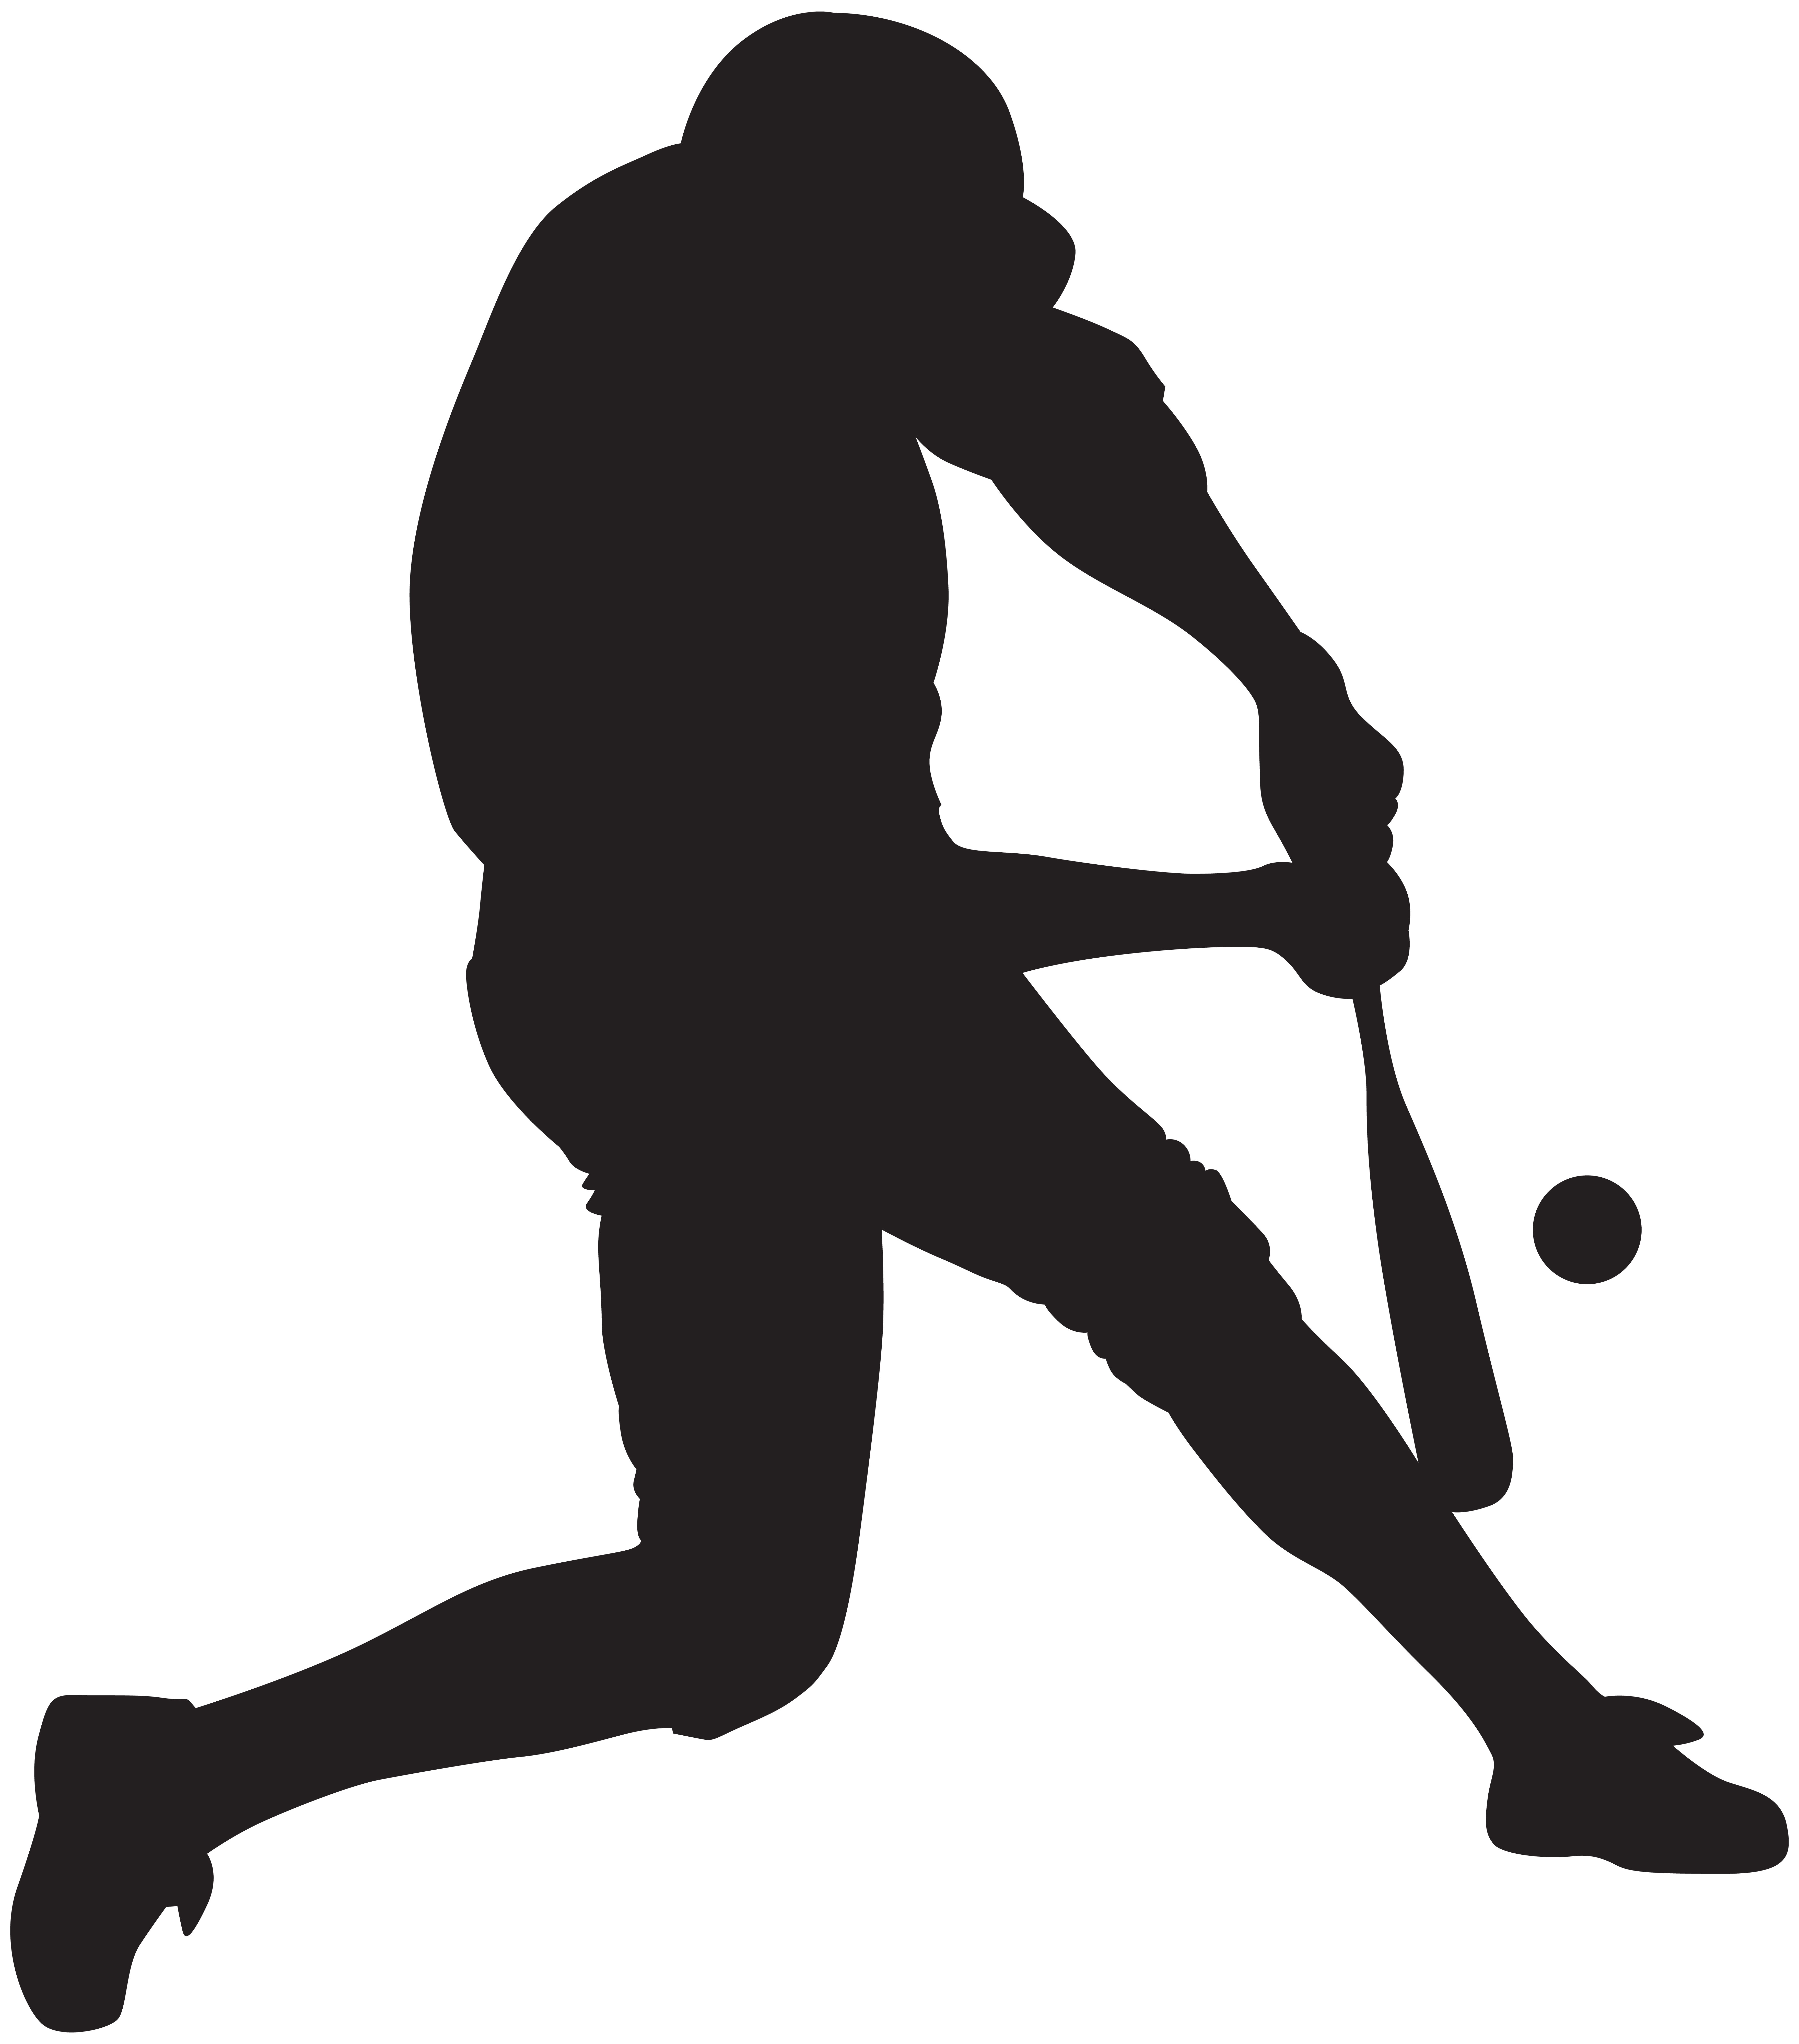 Baseball silhouette png. Player clip art image